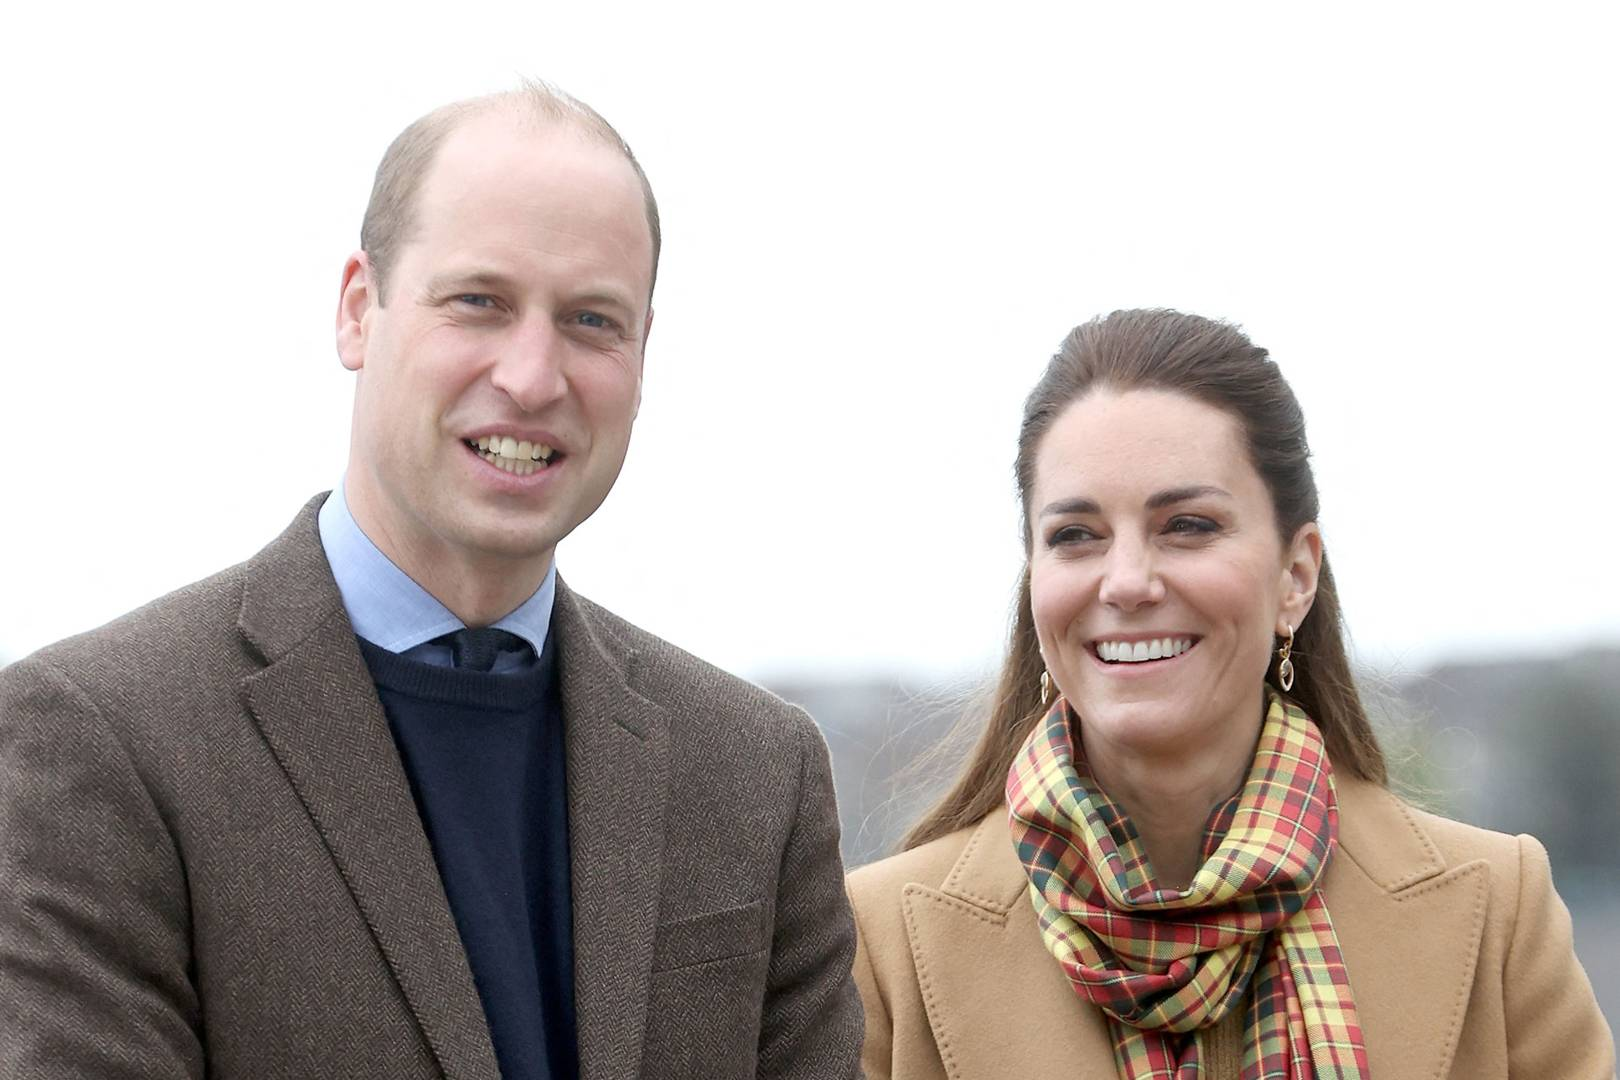 the-duke-and-duchess-of-cambridge's-charity-goes-from-strength-to-strength-post-megxit